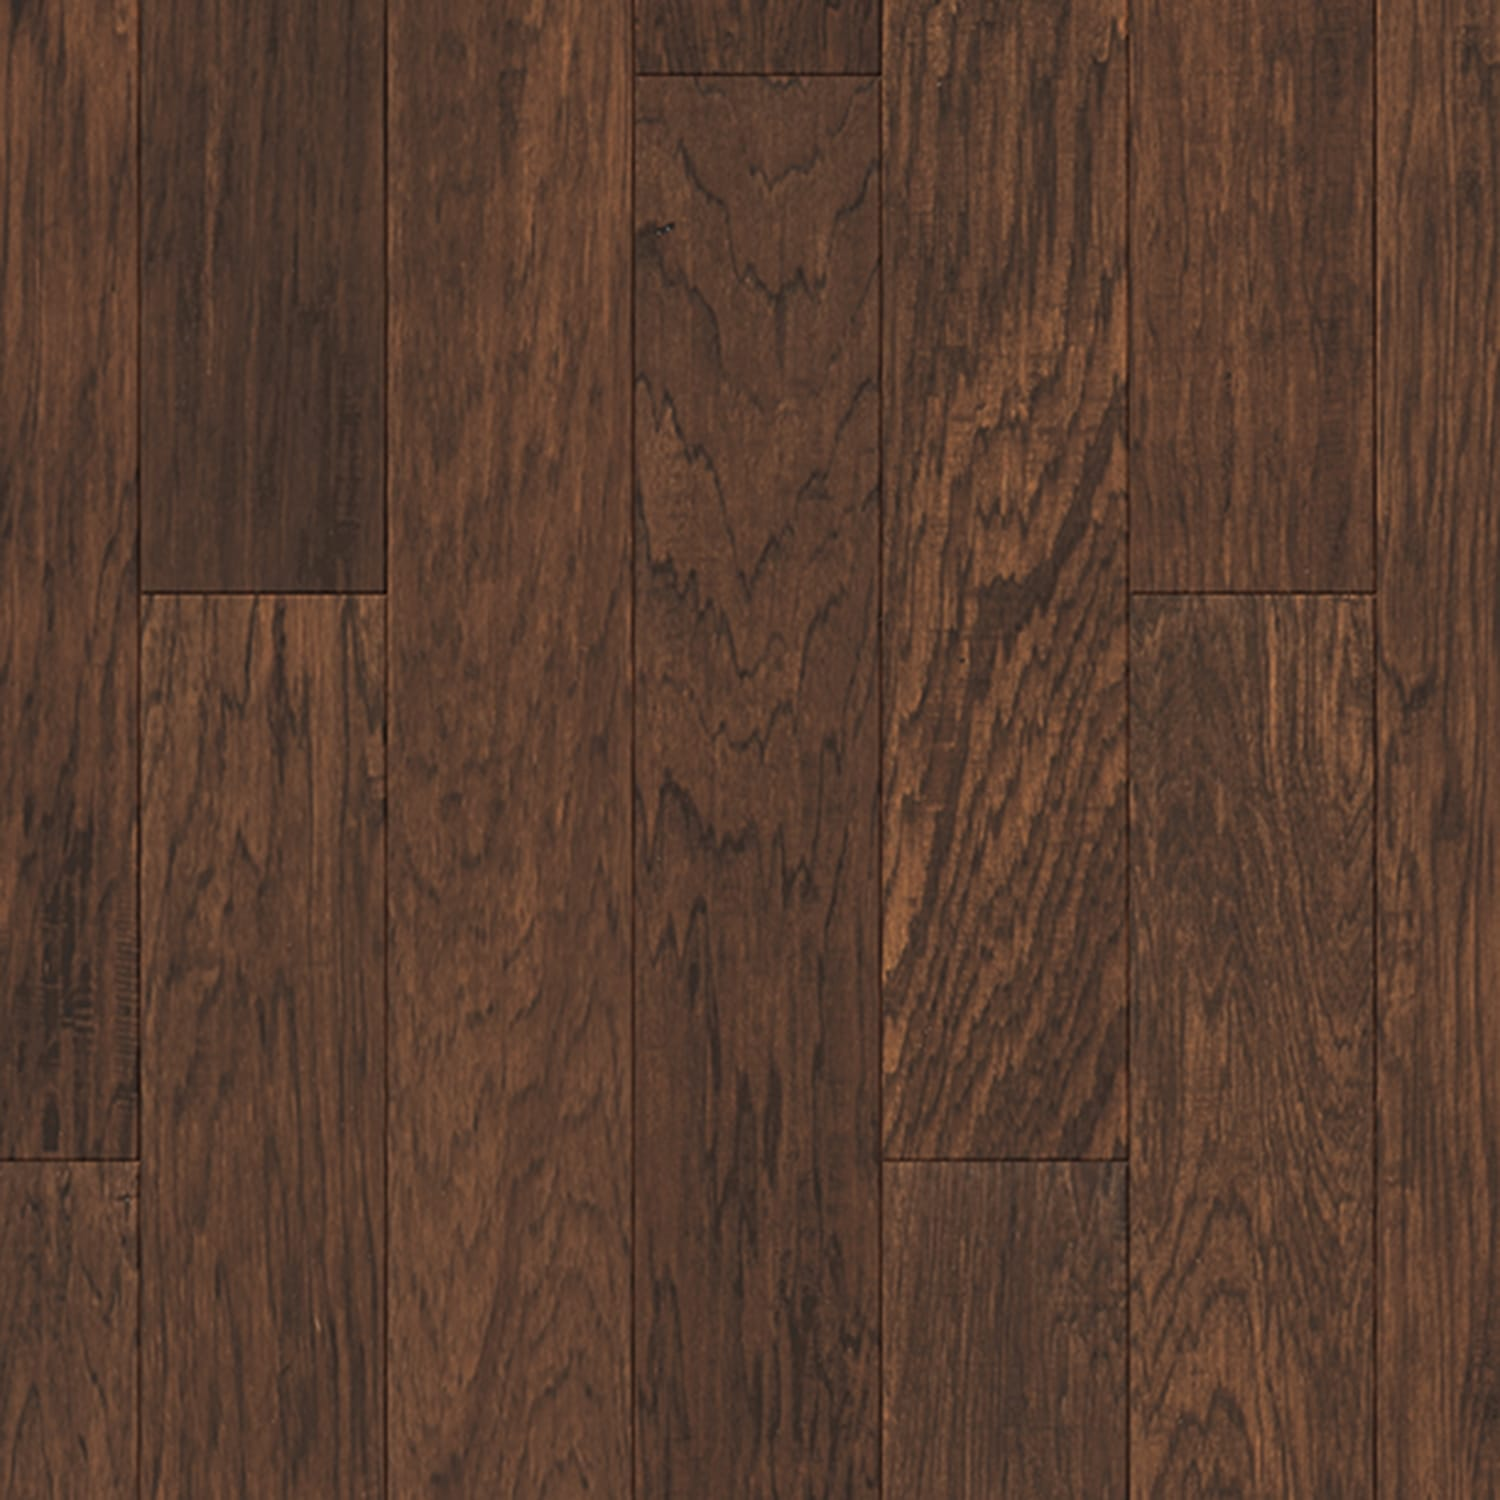 hardwood toronto hickory wood engineered grey floors product earl national mississauga image flooring